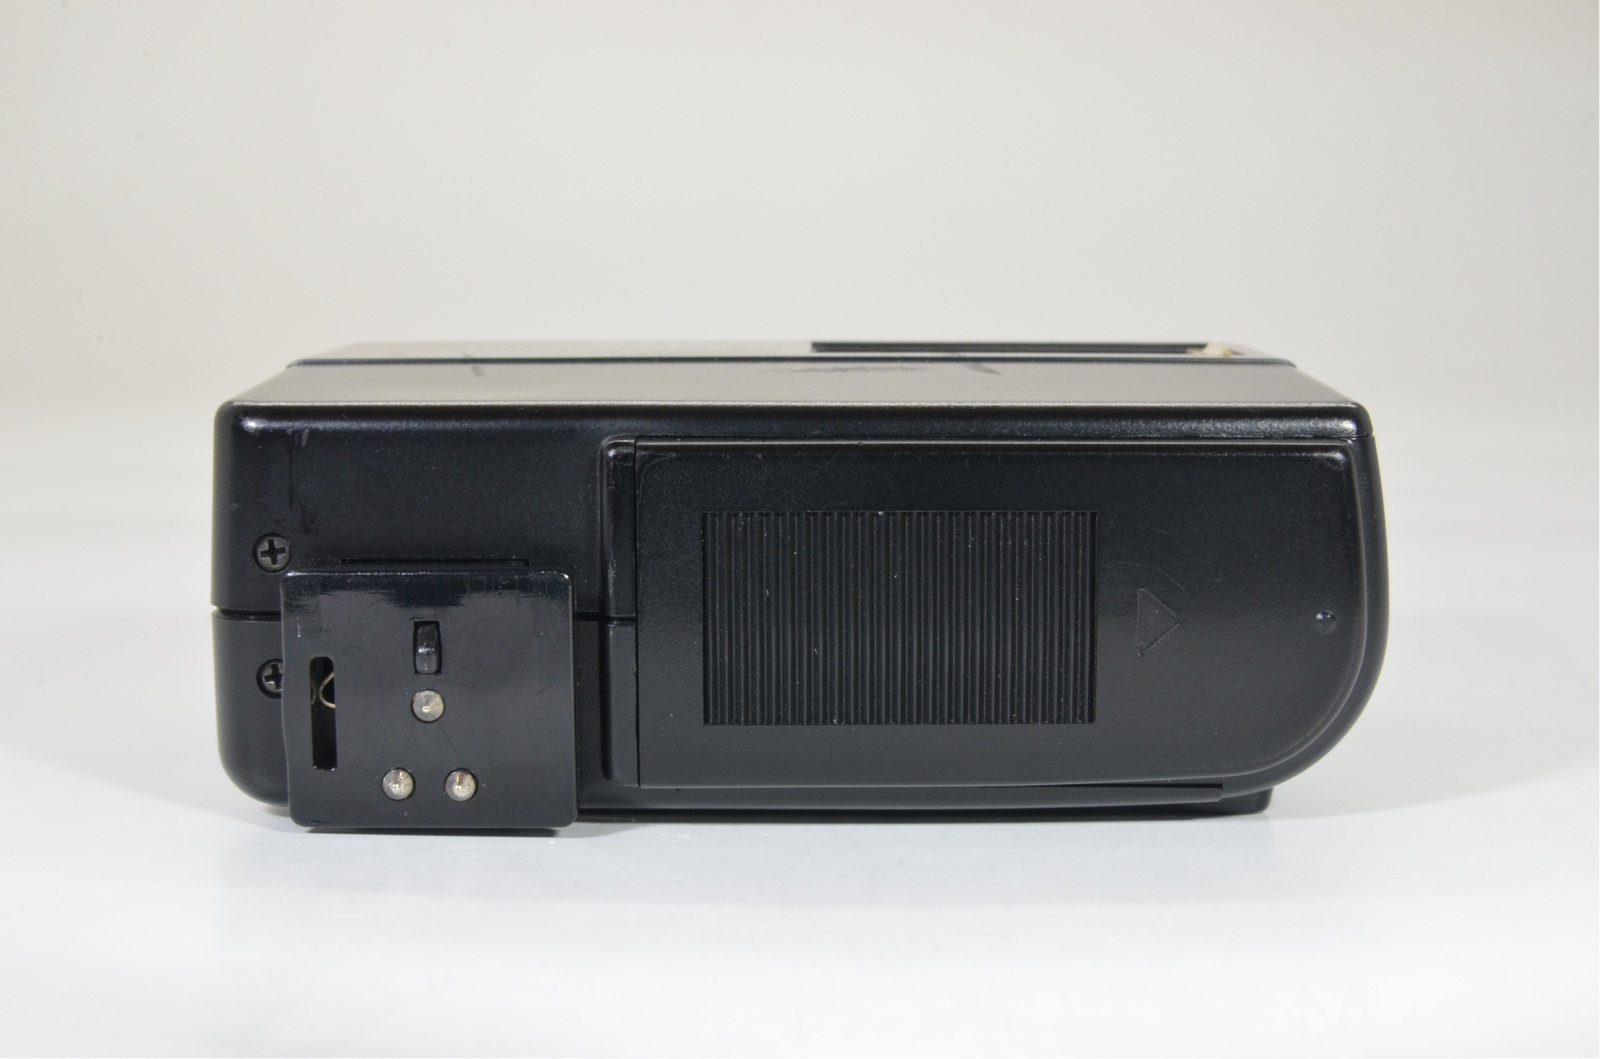 minolta auto cle electro flash strobe for cle from japan